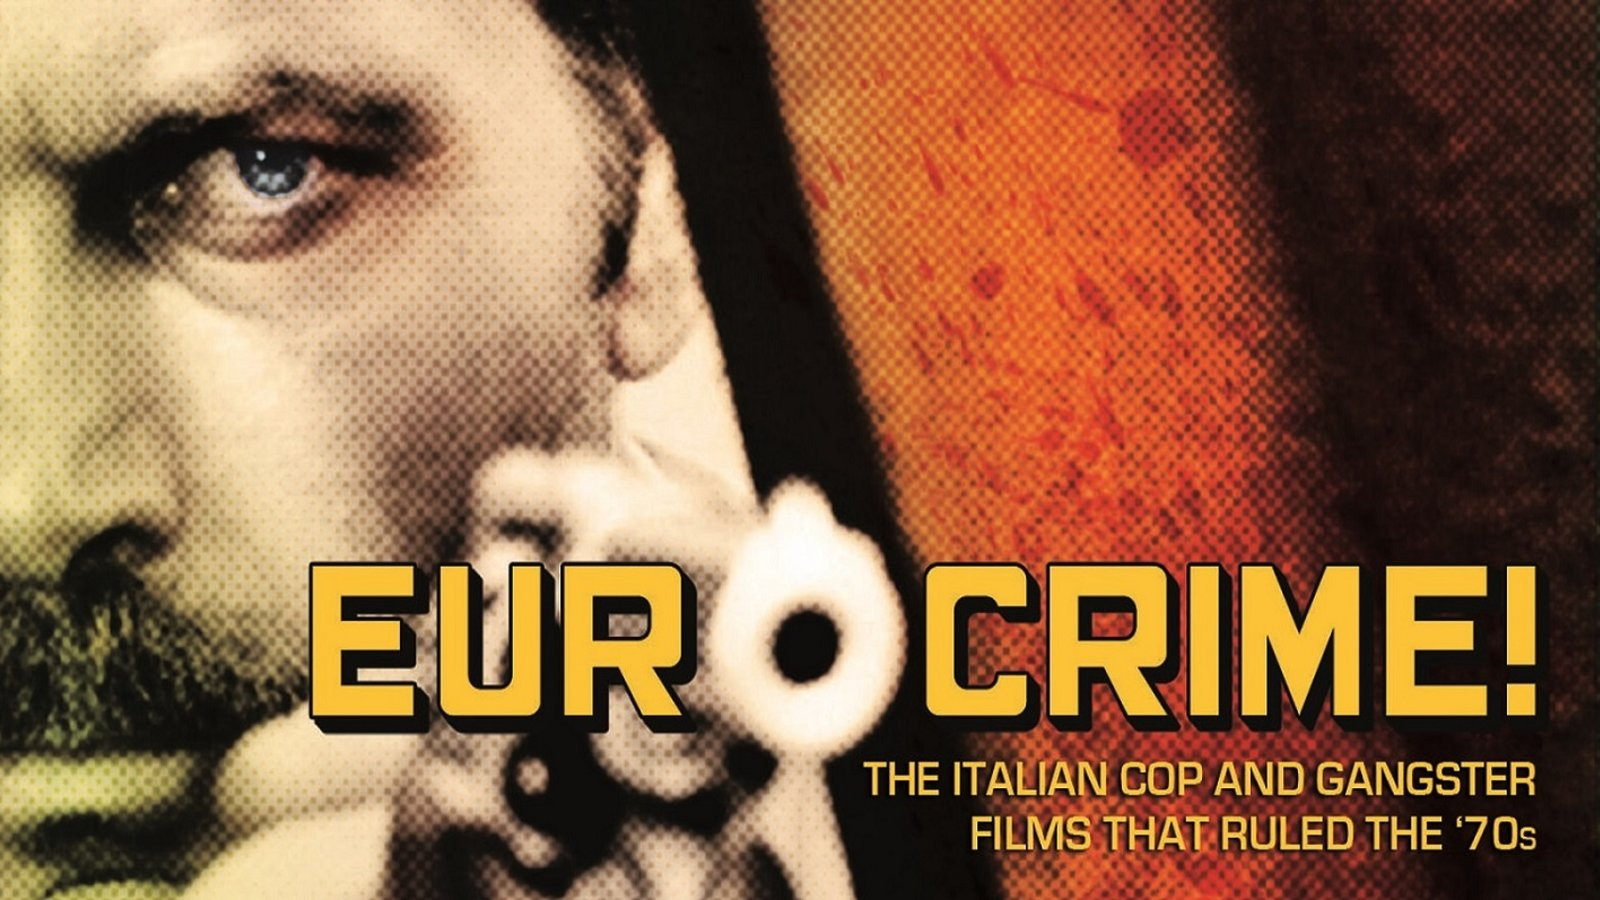 Eurocrime! - Italian Crime Cinema of the 1970s